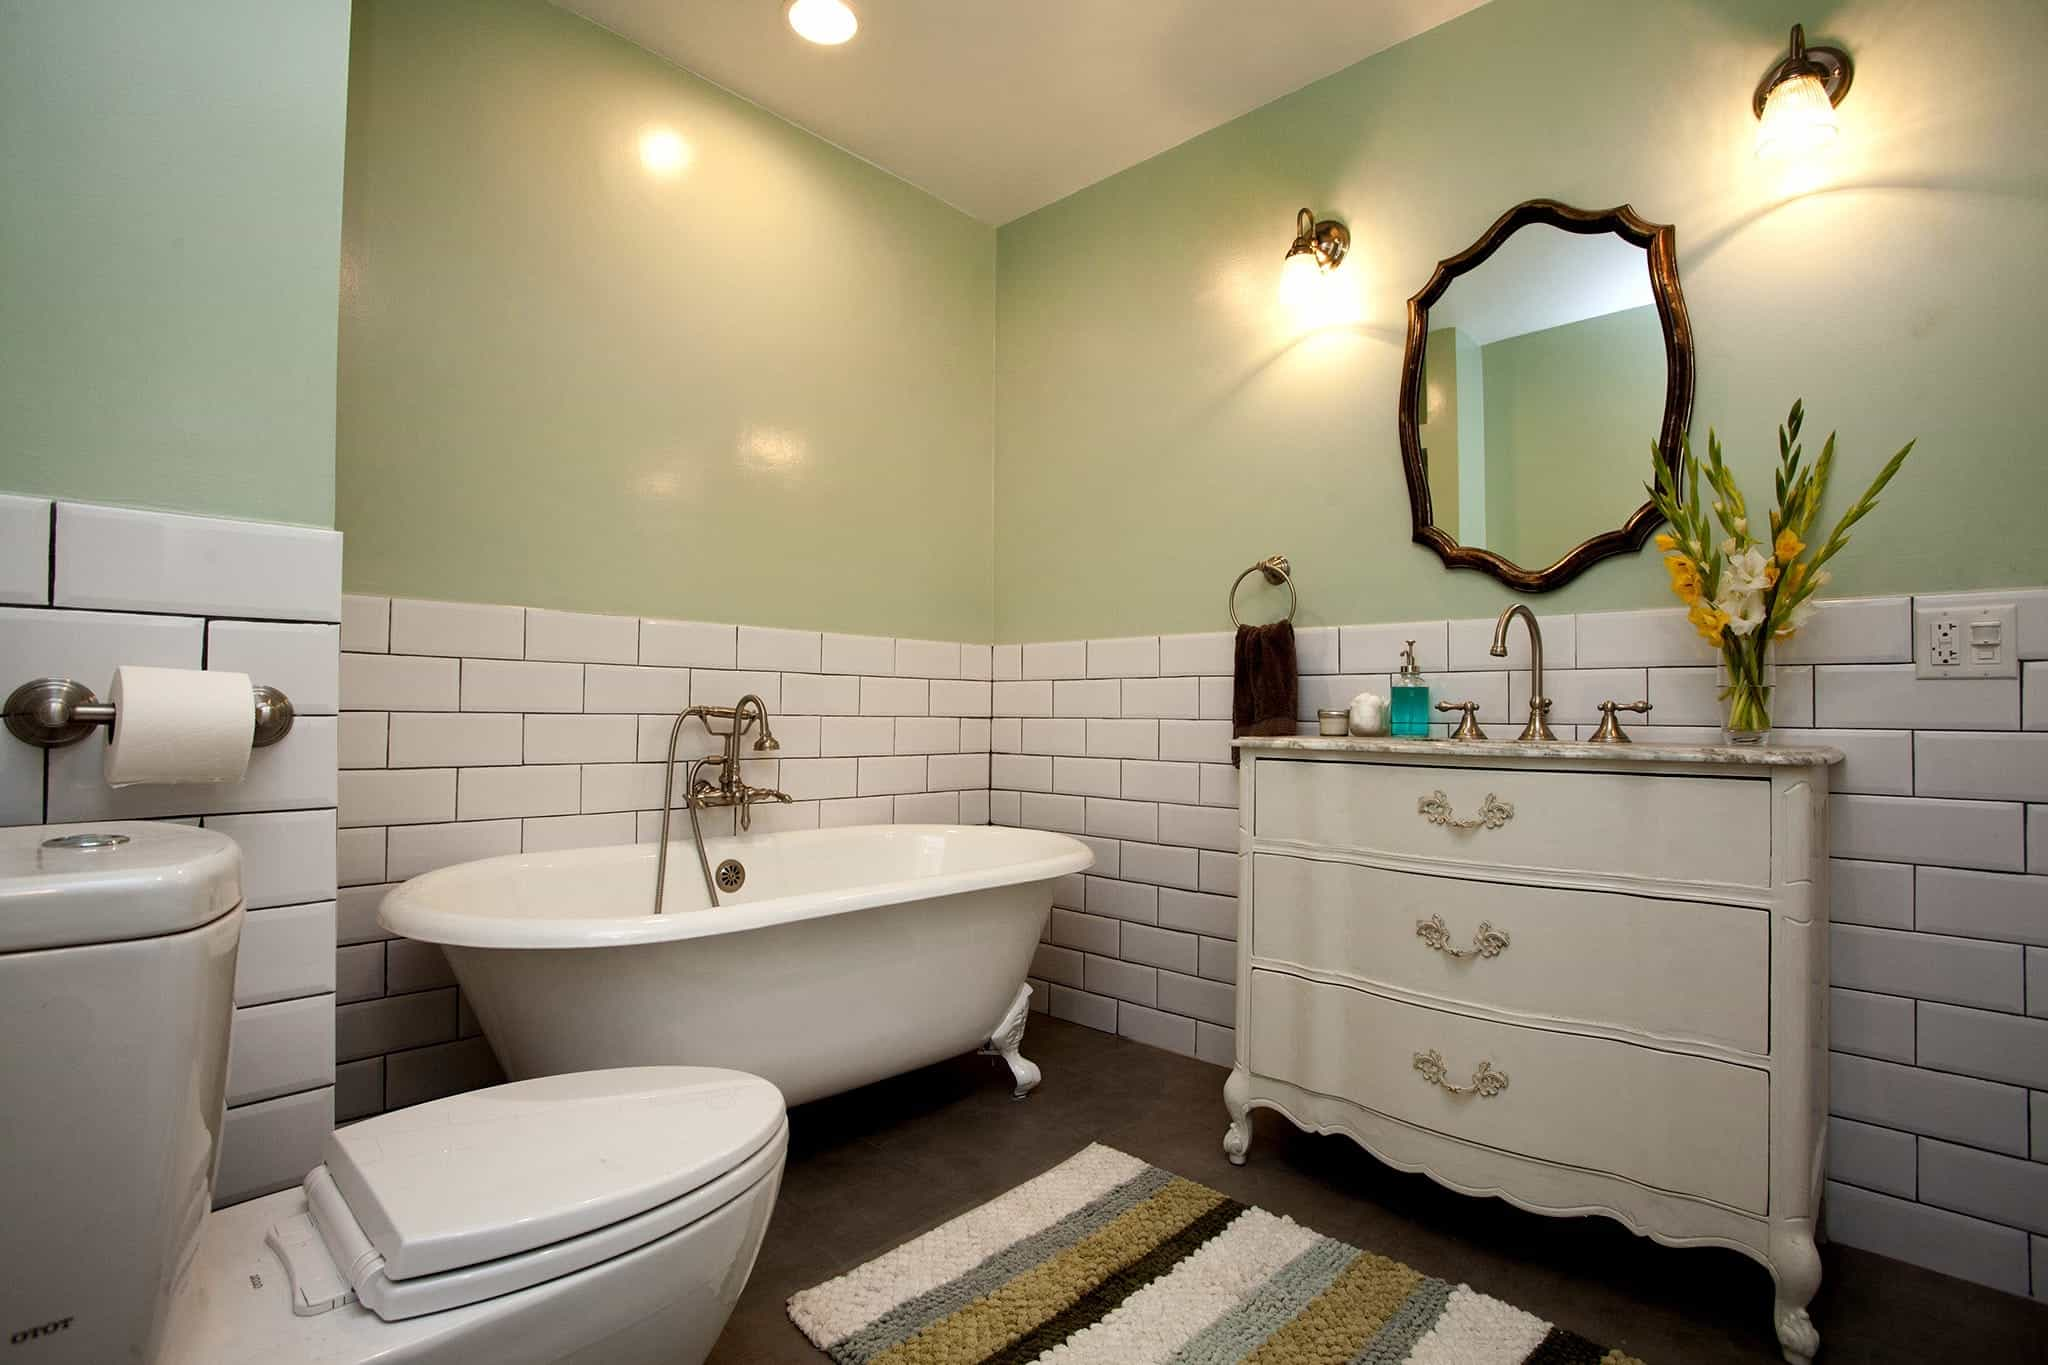 Cozy Rug For Classic Style Bathroom Design (Image 5 of 11)